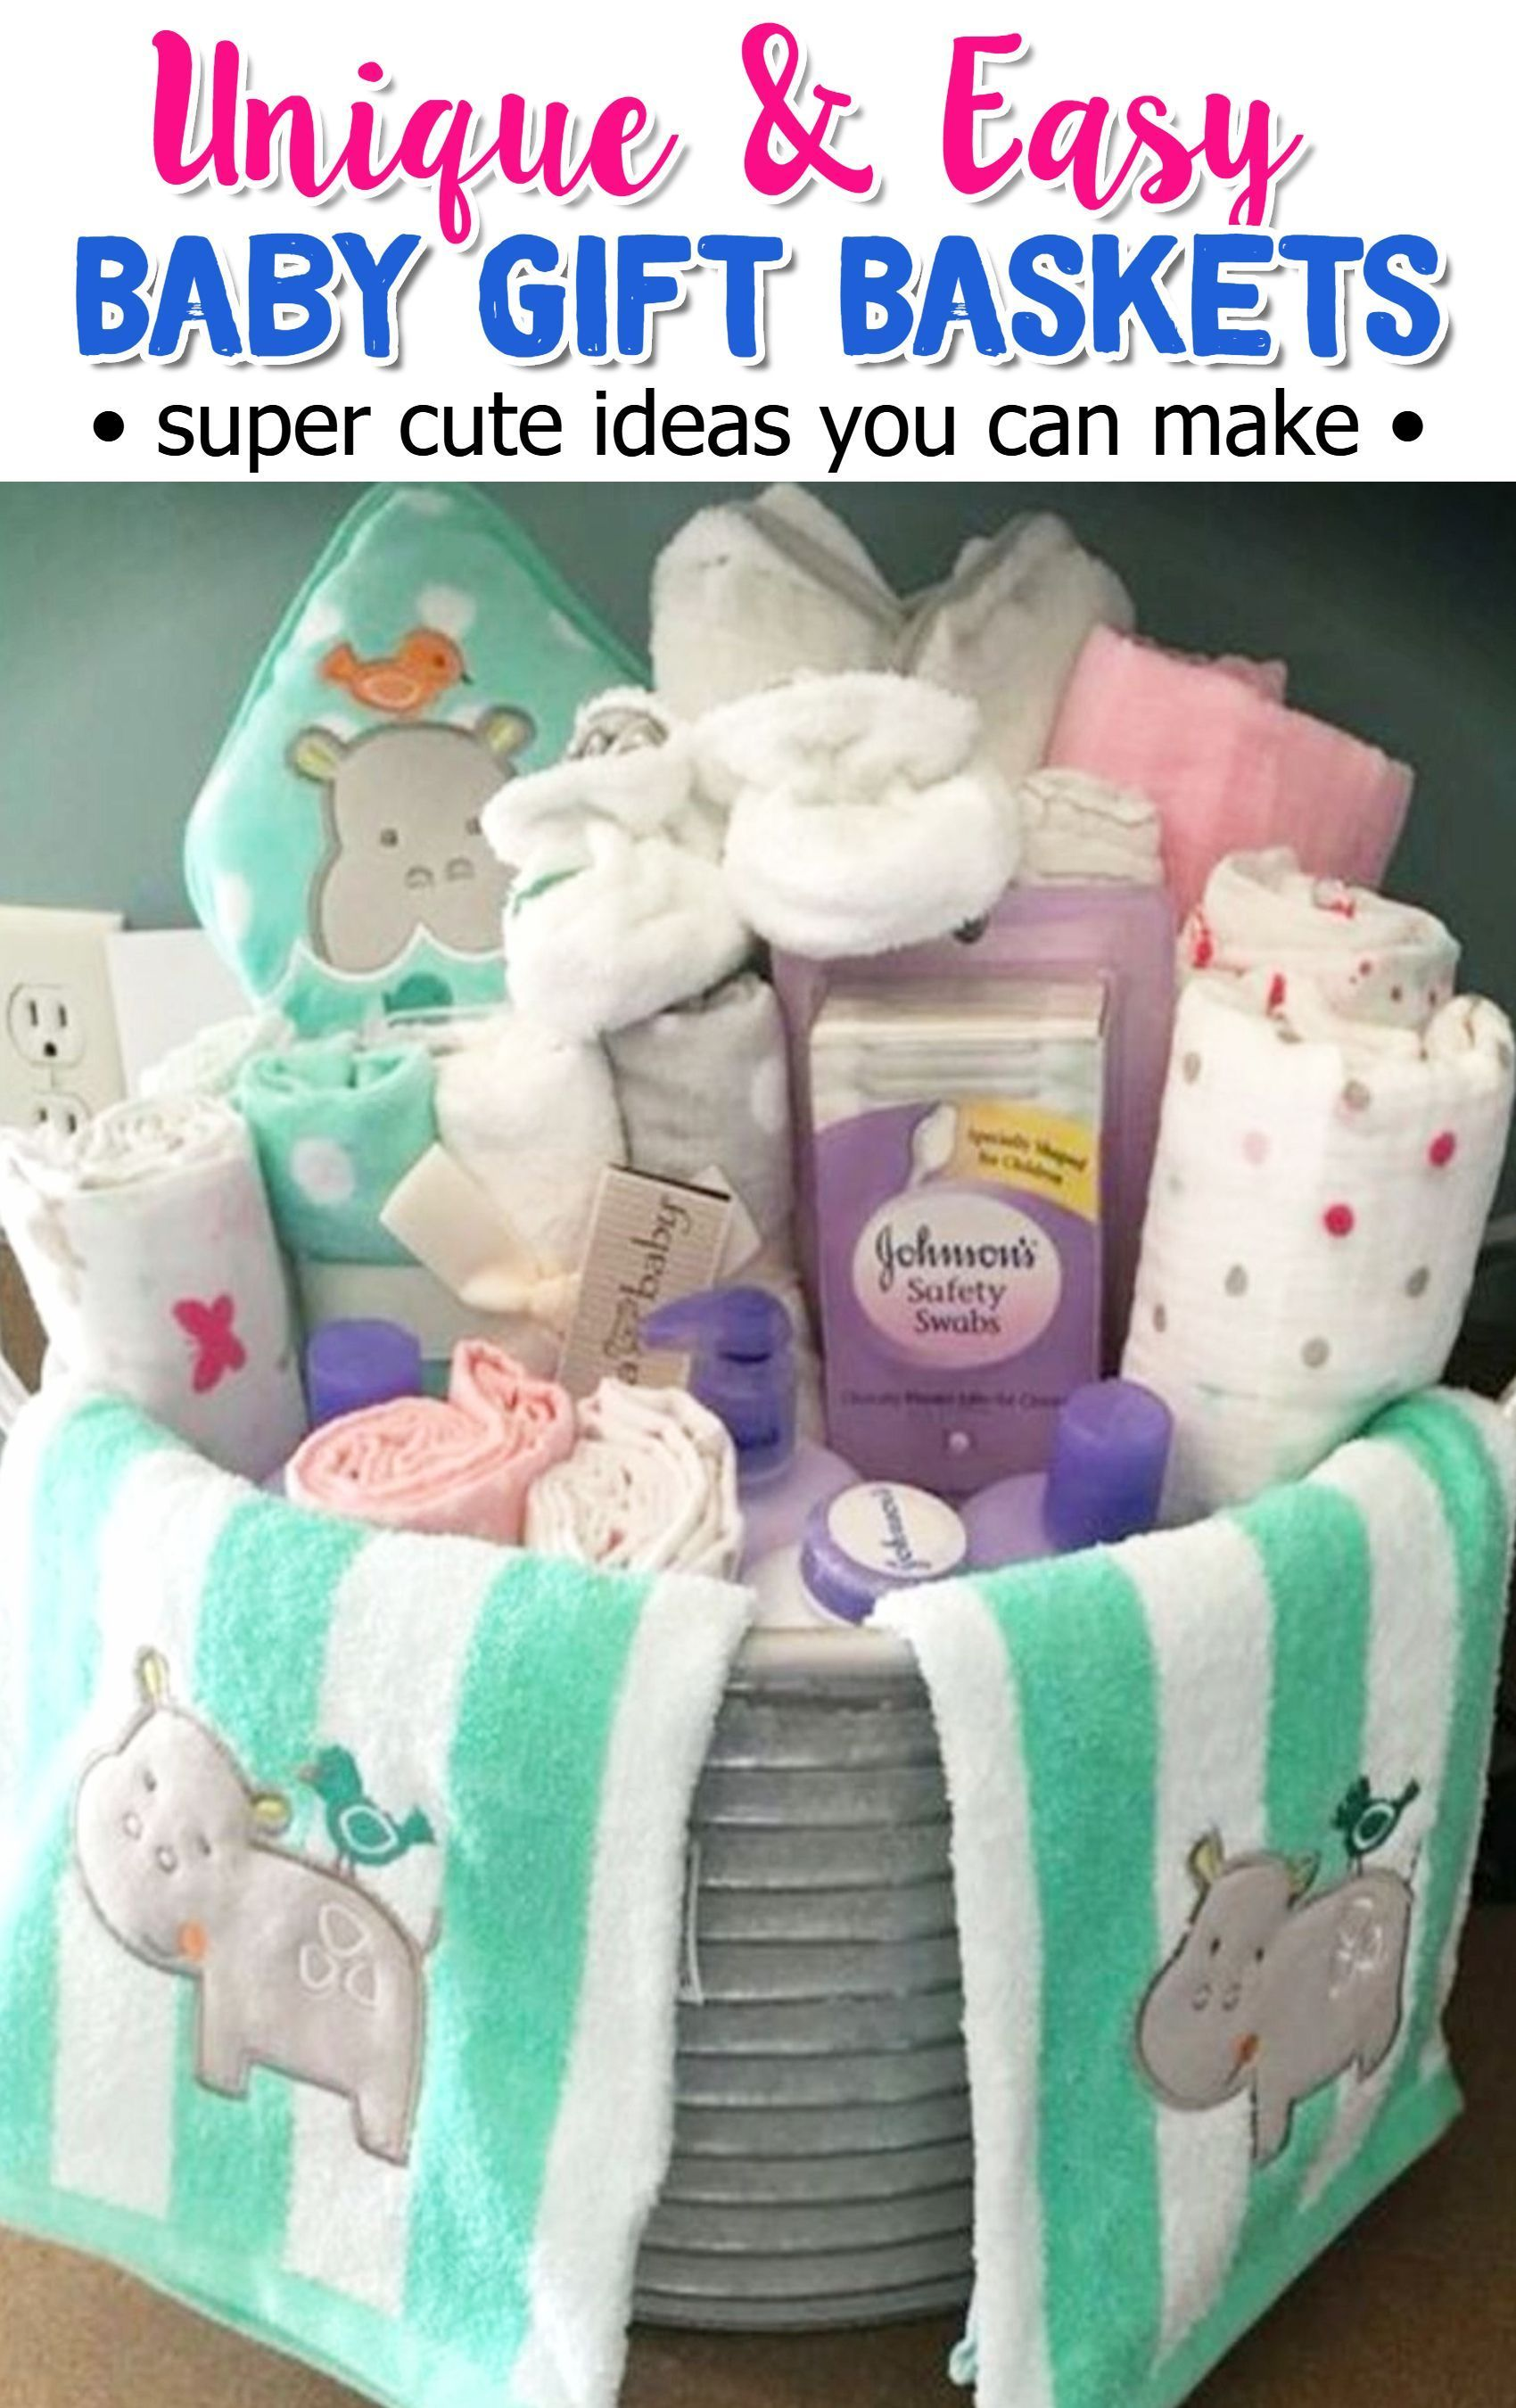 The best do it yourself gifts fun clever and unique diy craft baby gift basket ideas for her baby shower gift these are super cute diy ideas solutioingenieria Image collections